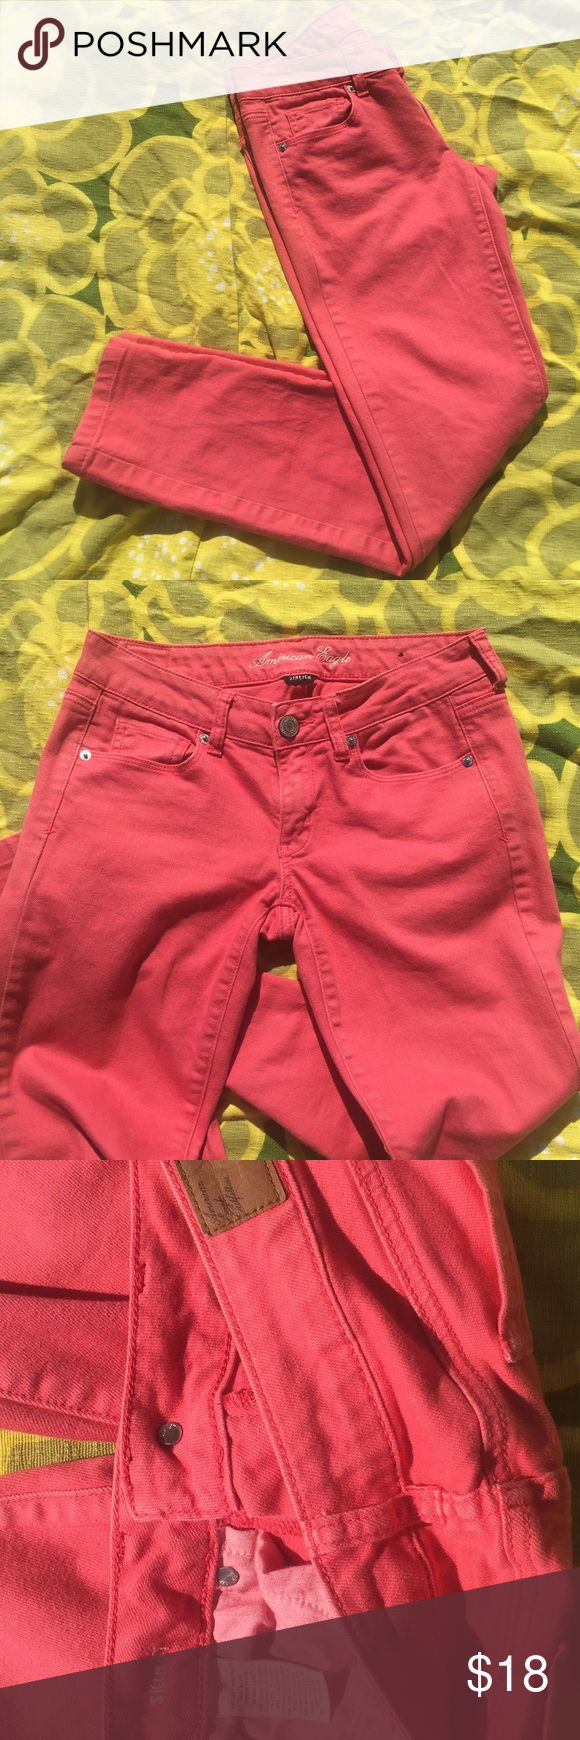 Electric peach skinny jeans These pants are peachy perfect! Love how bright they are! Tiny little mark on them pictured in last pic but may just come out of you wash them! American Eagle Outfitters Pants Skinny